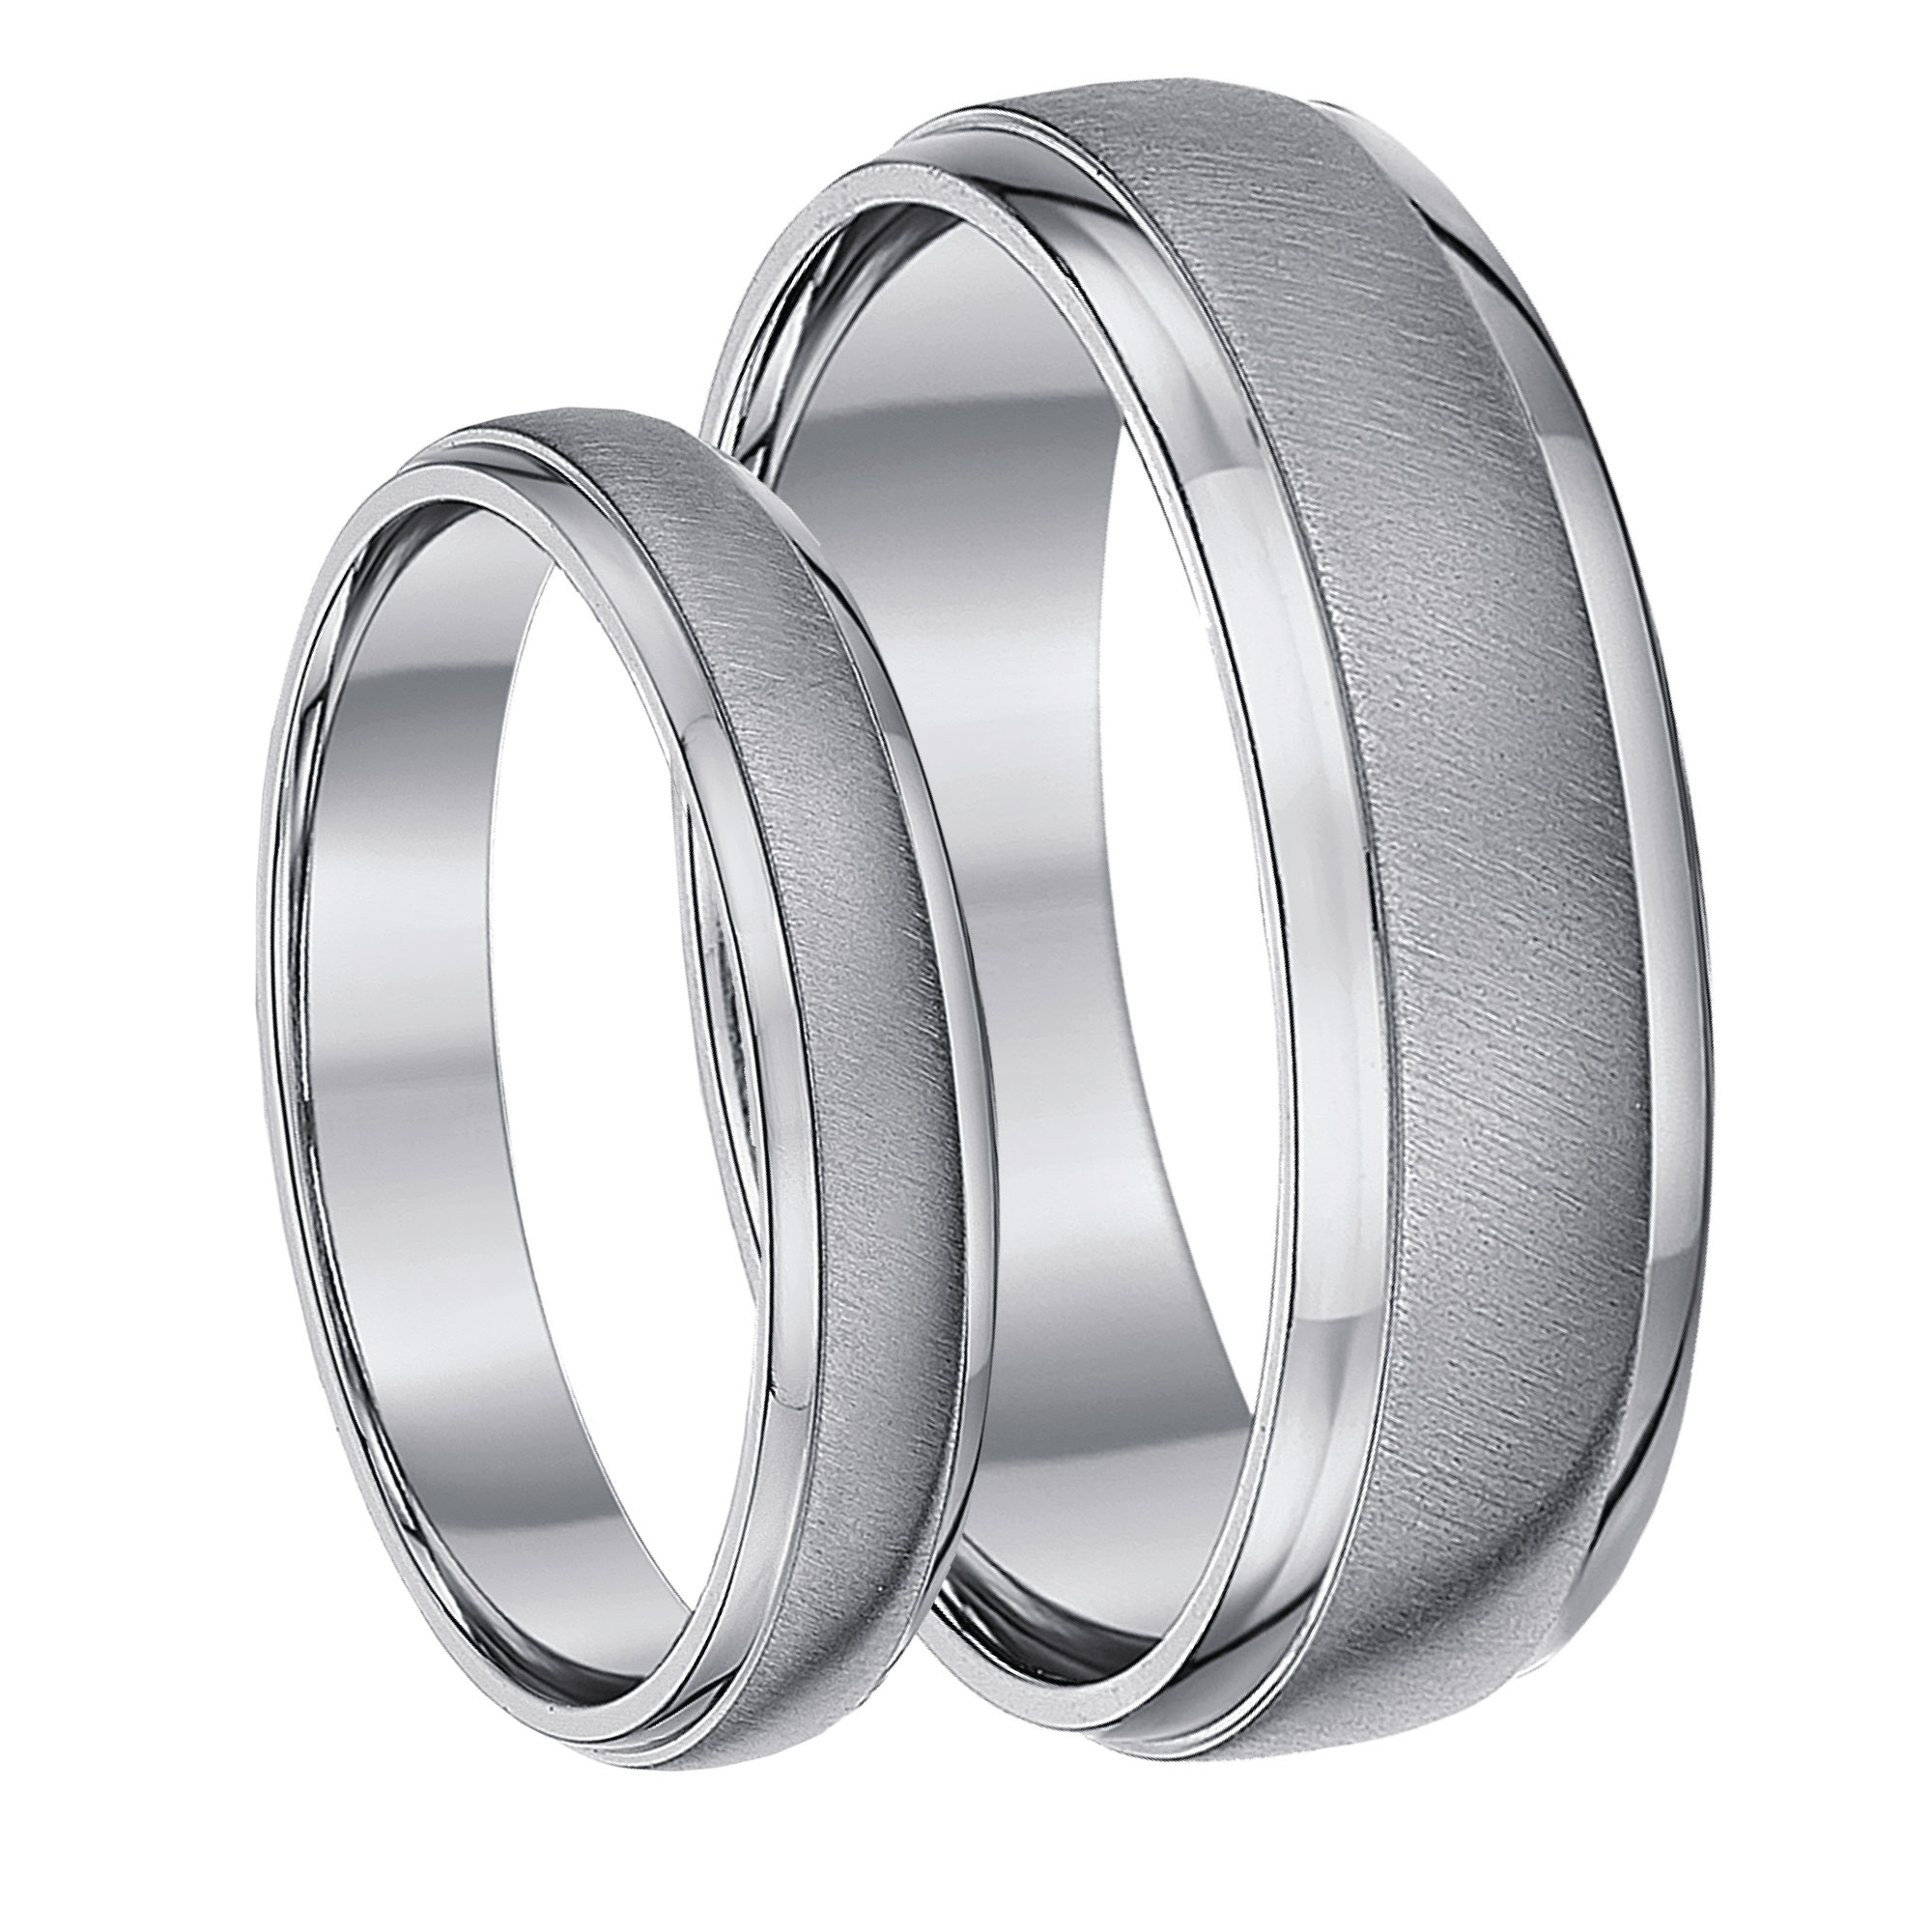 titanium jewelry best band mens men solutions platinum of about set channel ring bling wedding